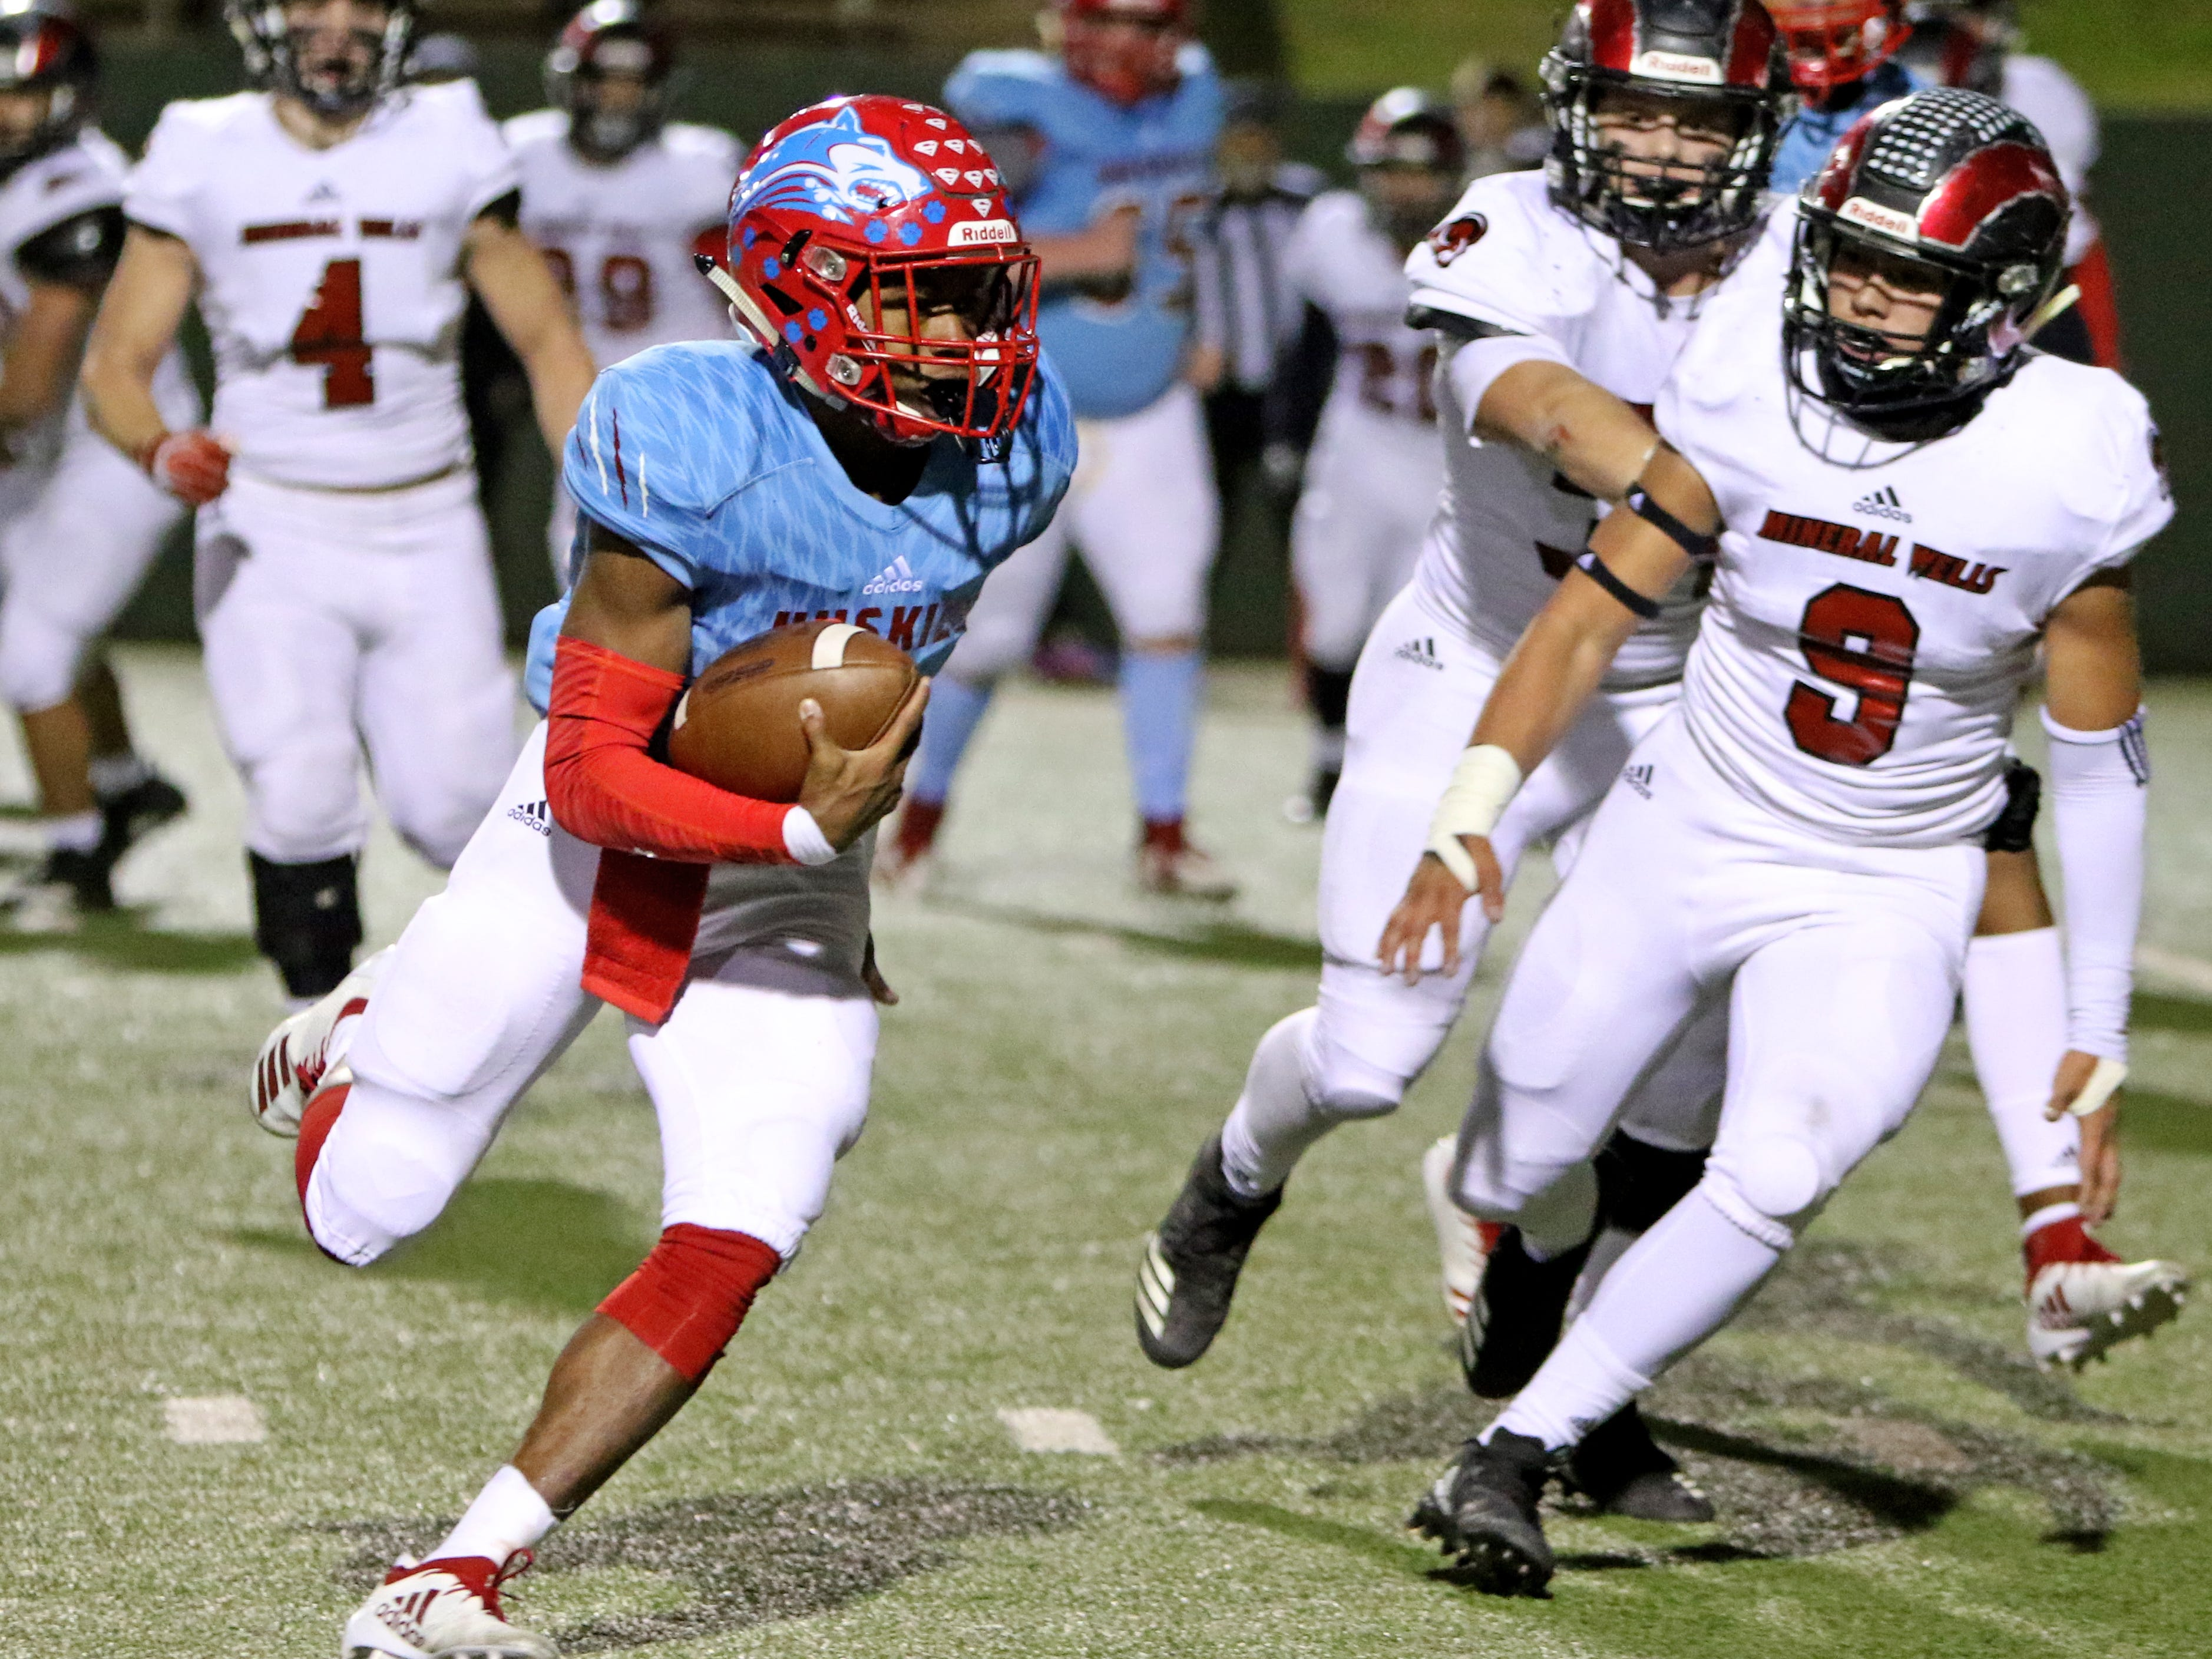 Hirschi's Nathan Downing runs for a two-point conversion against Mineral Wells Thursday, Nov. 8, 2018, at Memorial Stadium. The Huskies defeated the Rams 41-20.